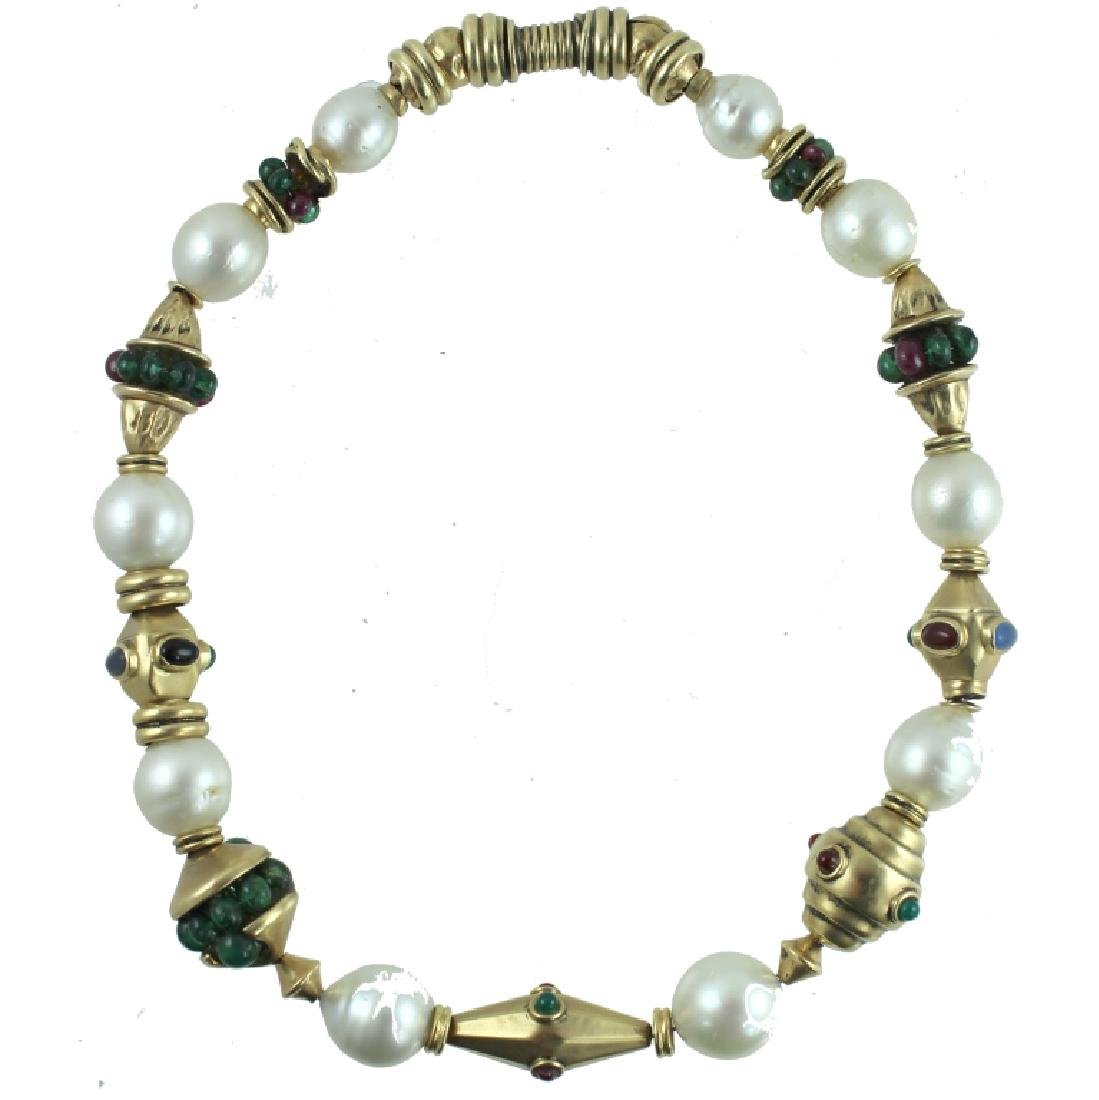 14K PEARL & COLORED STONE NECKLACE